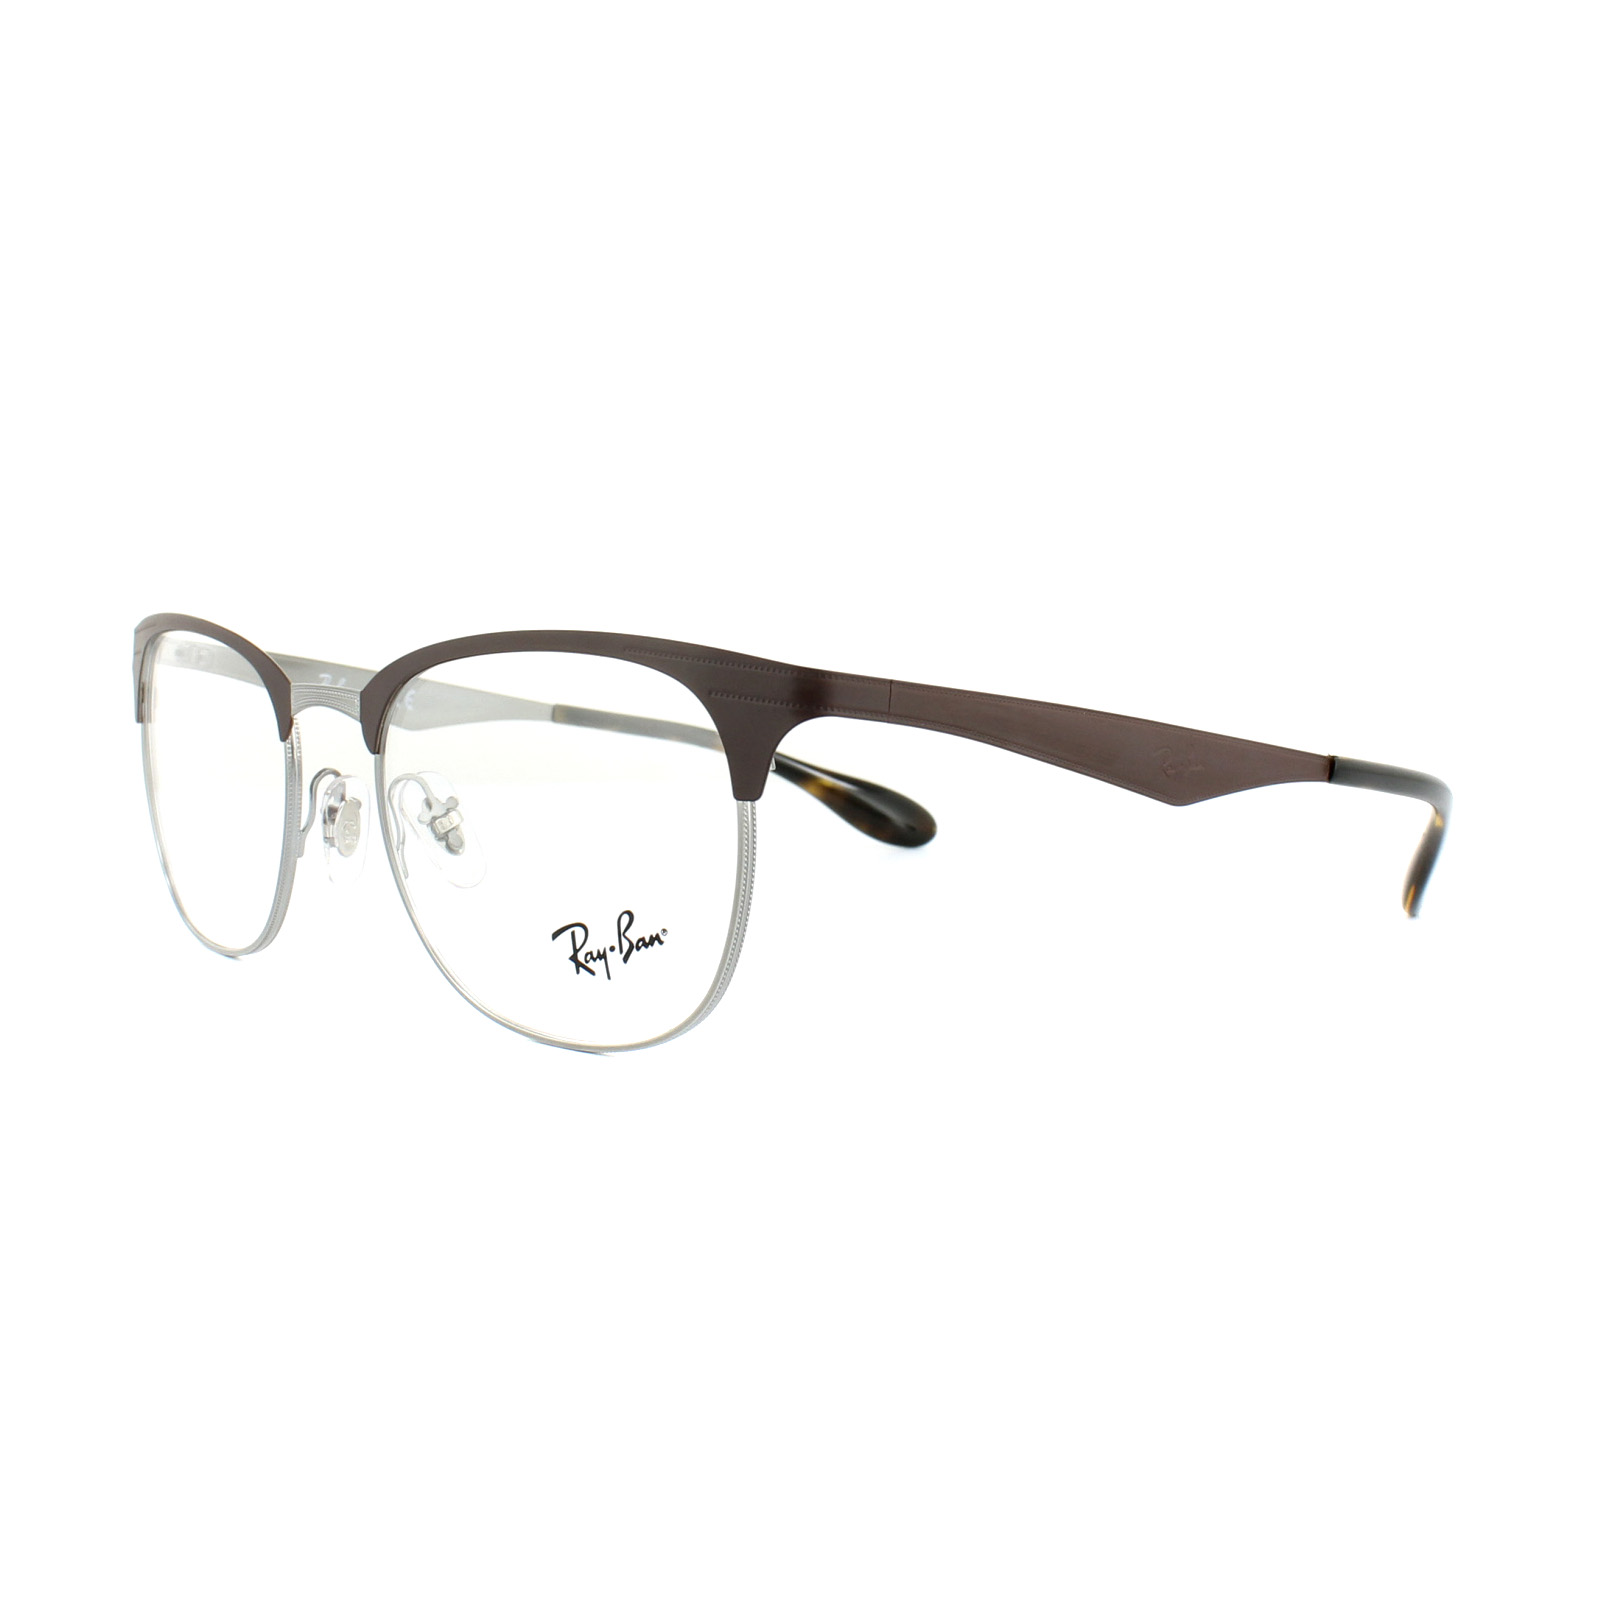 8422a4829f Sentinel Ray-Ban Glasses Frames RX 6346 2912 Gunmetal Matte Brown Mens  Womens 52mm